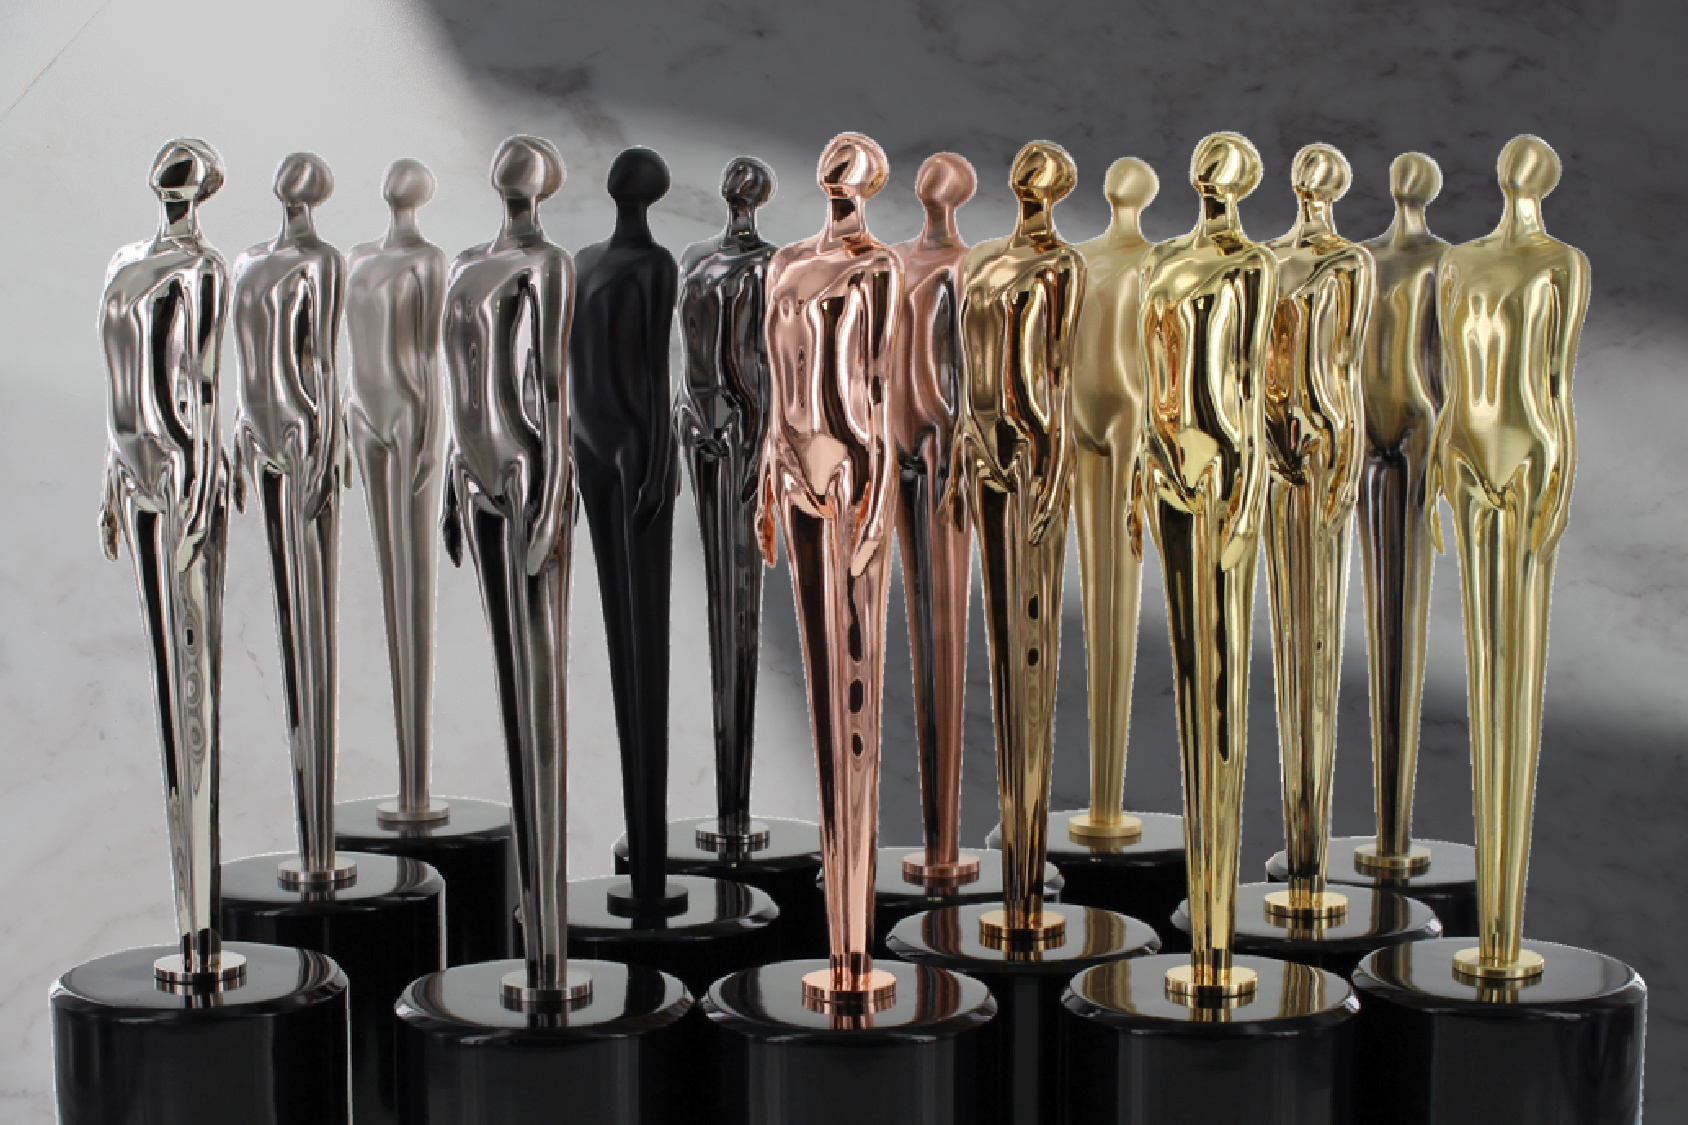 A collection of the Proud Form trophy in all different custom electroplated finishes